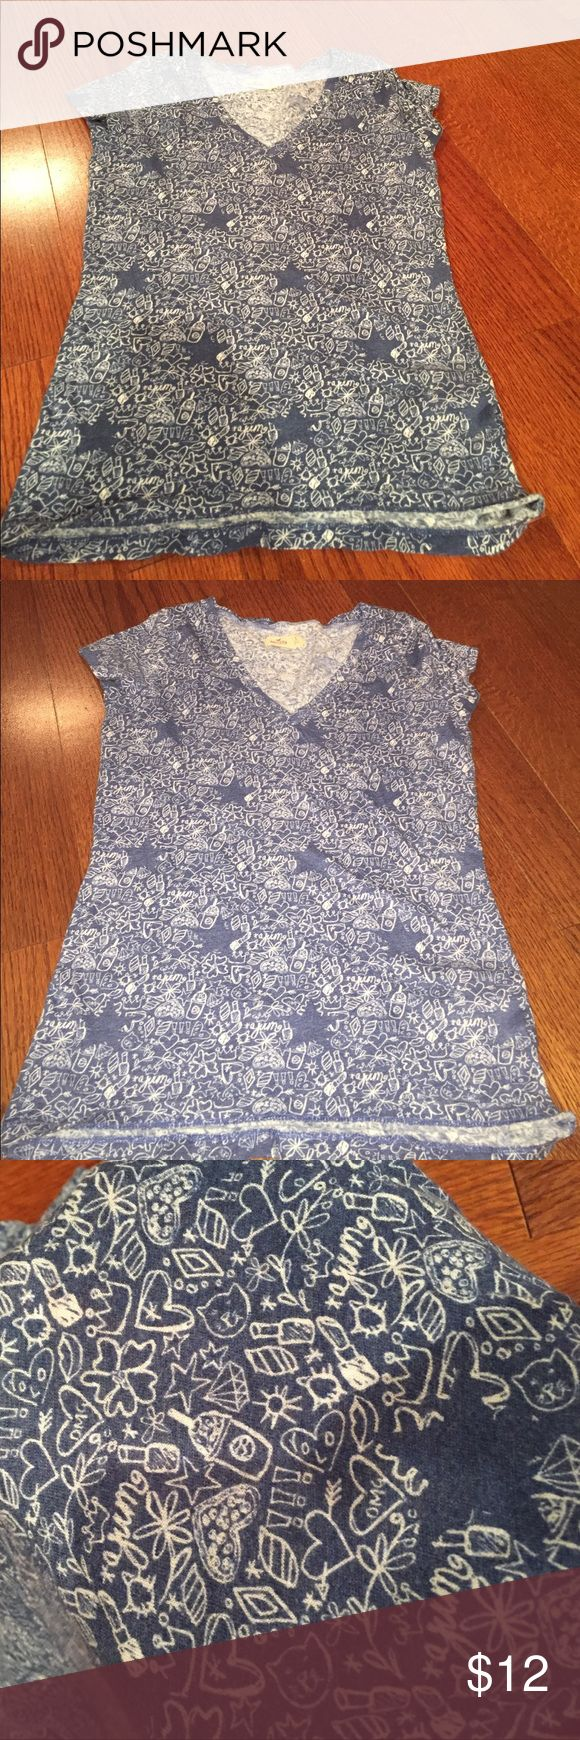 Hollister t shirt Navy blue and white designed t shirt great condition Hollister Tops Tees - Short Sleeve